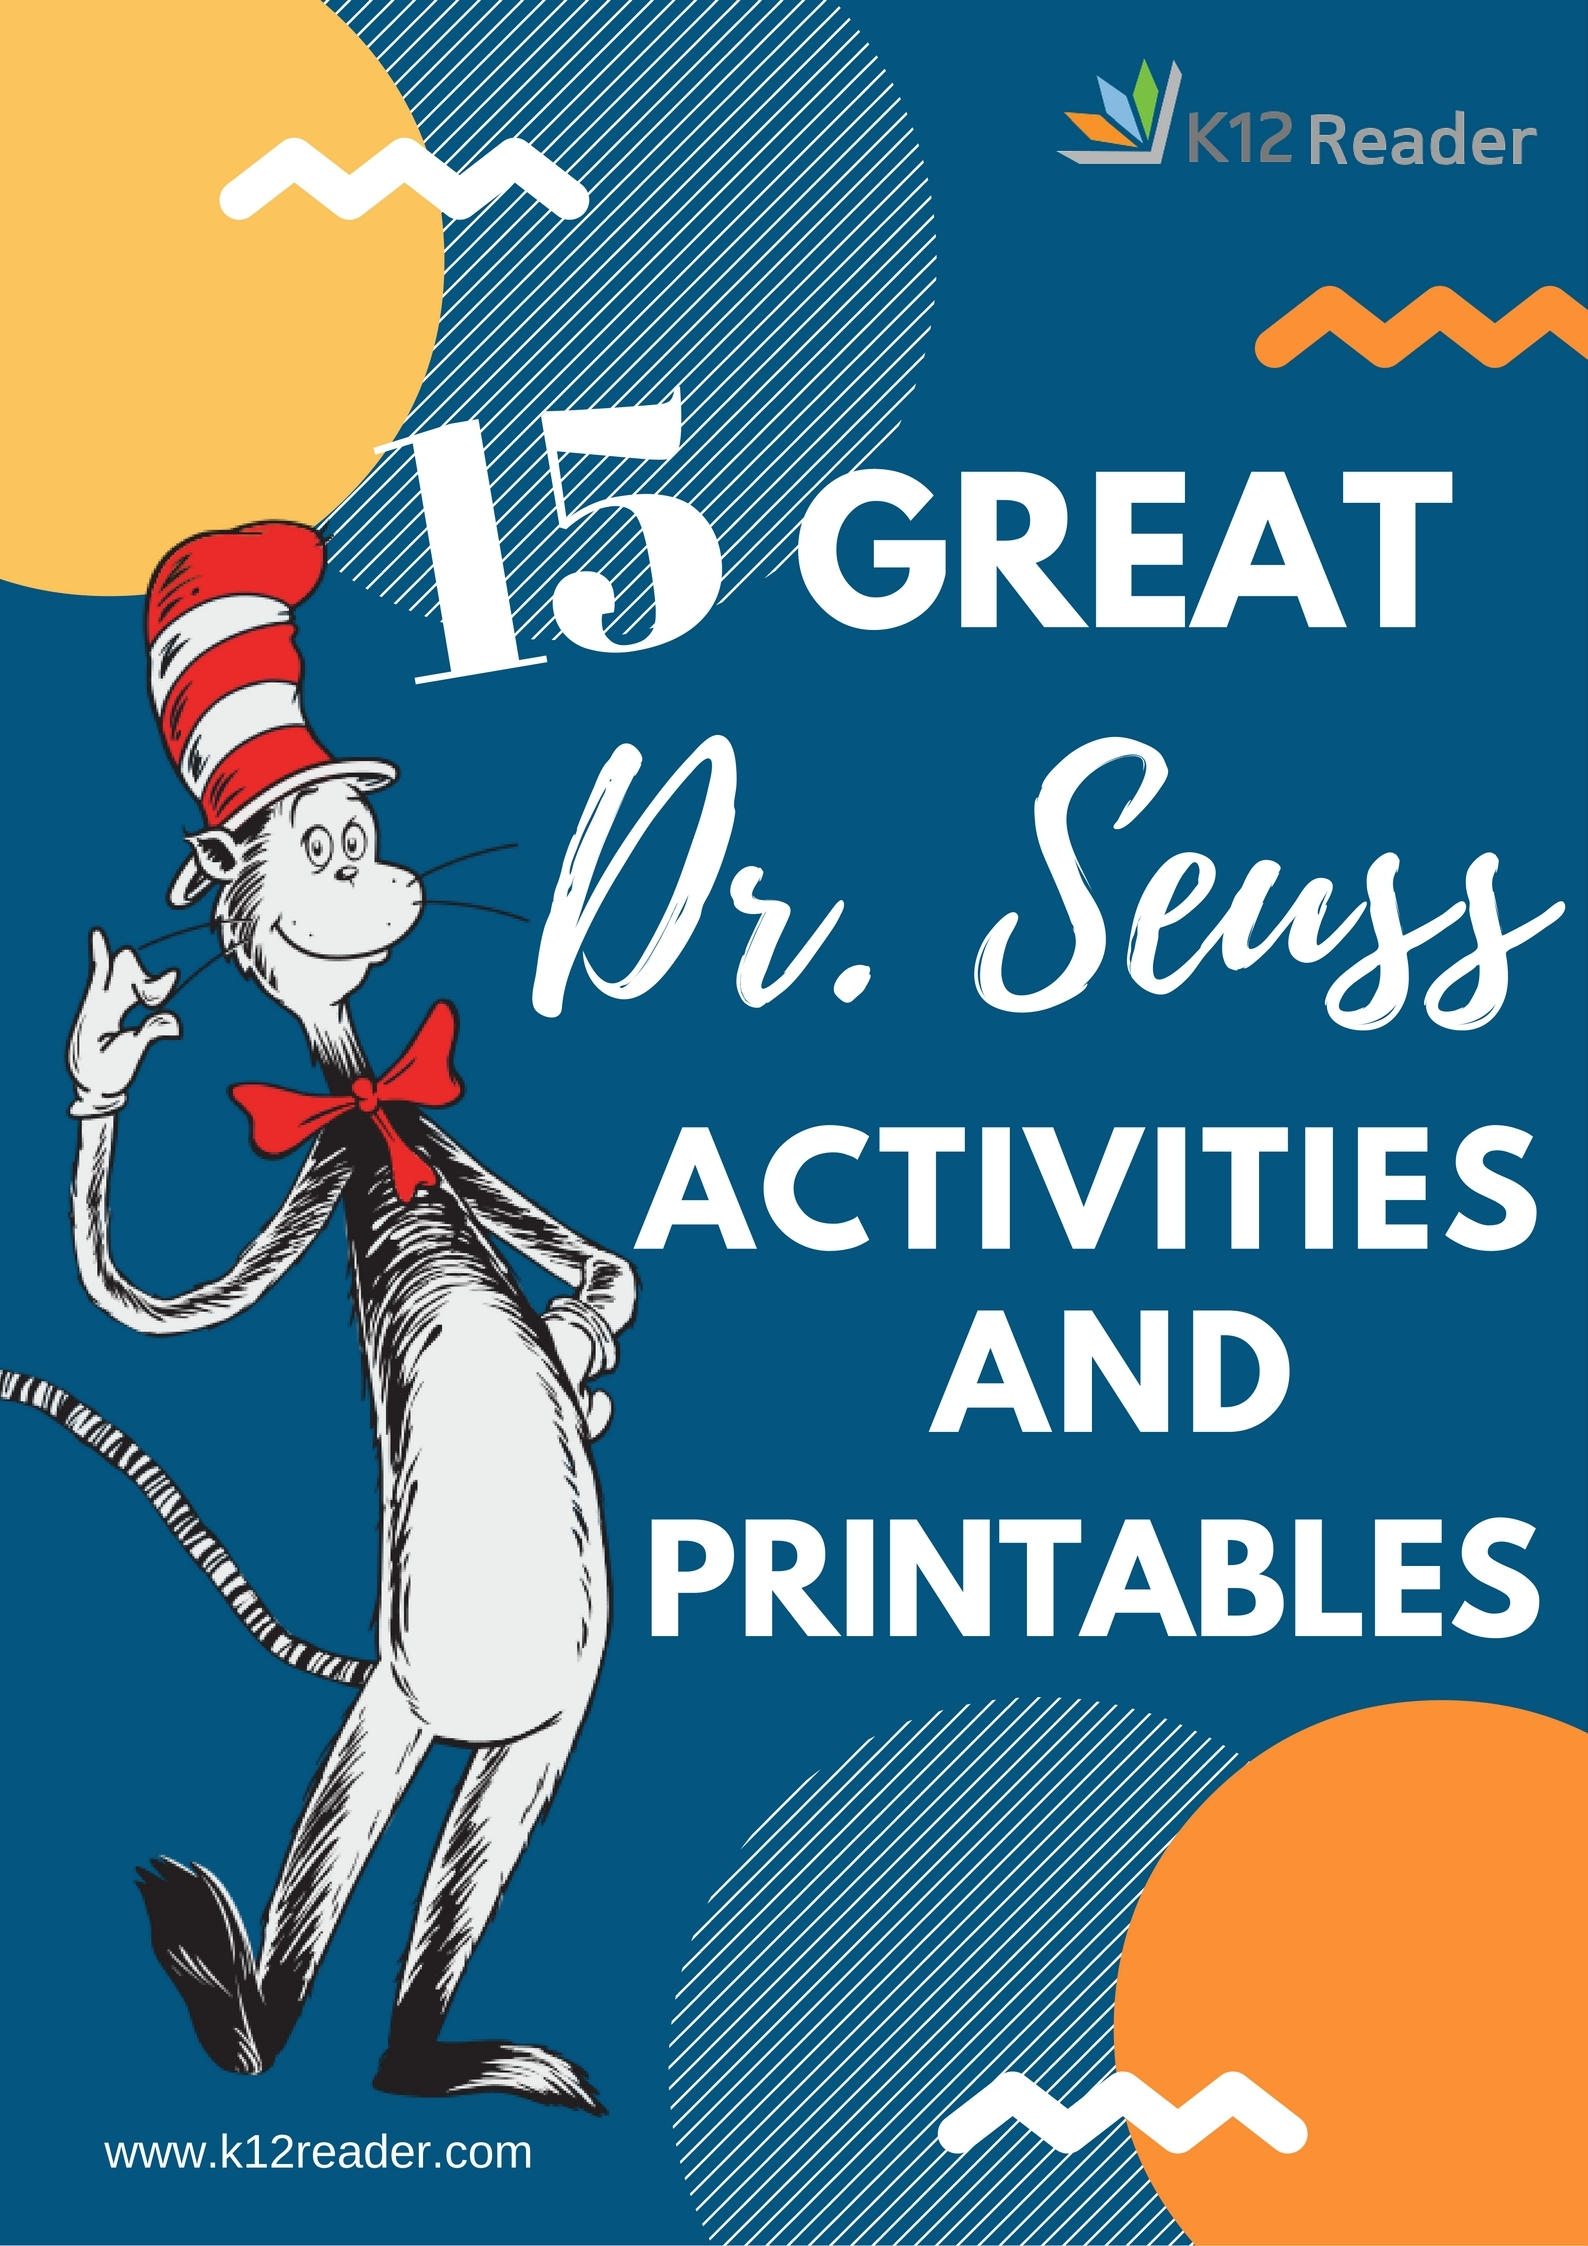 dr seuss coloring pages - 15 great dr seuss printables and activities for your classroom